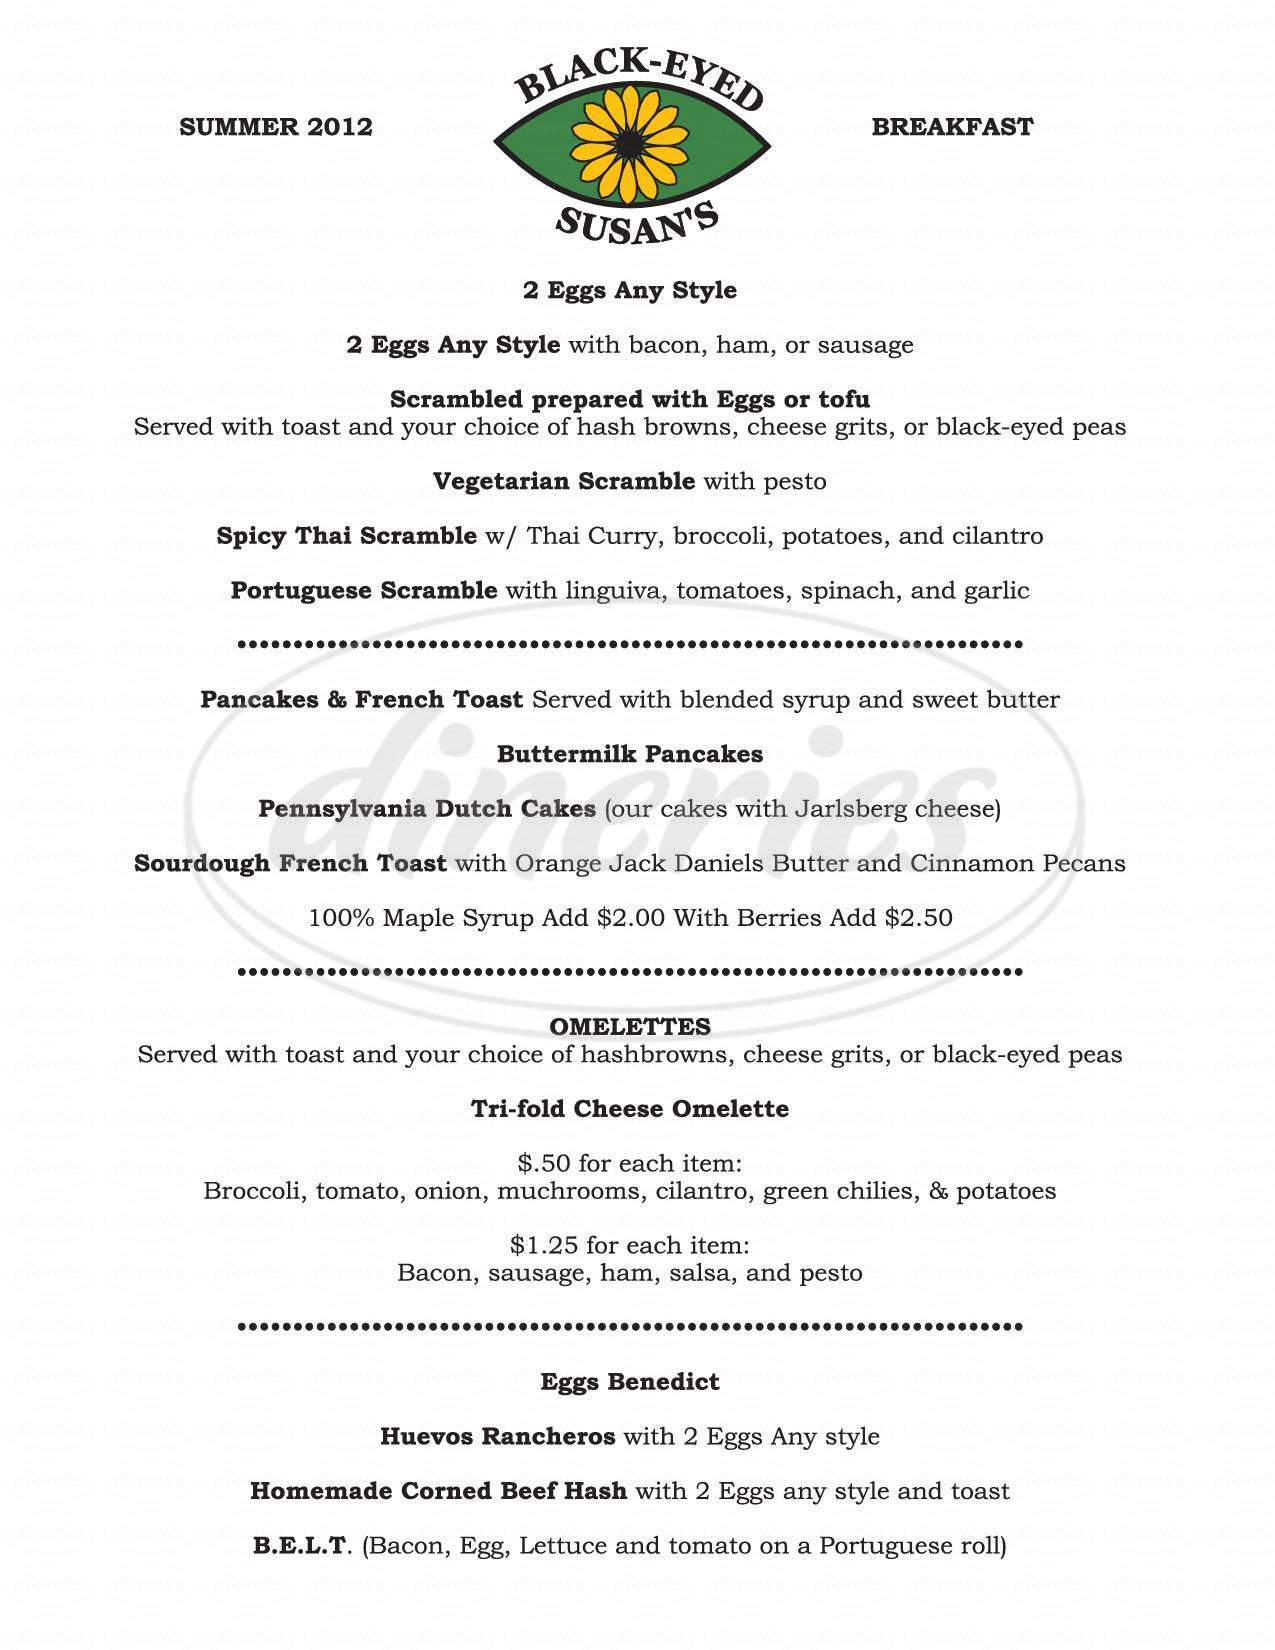 menu for Black-Eyed Susan's